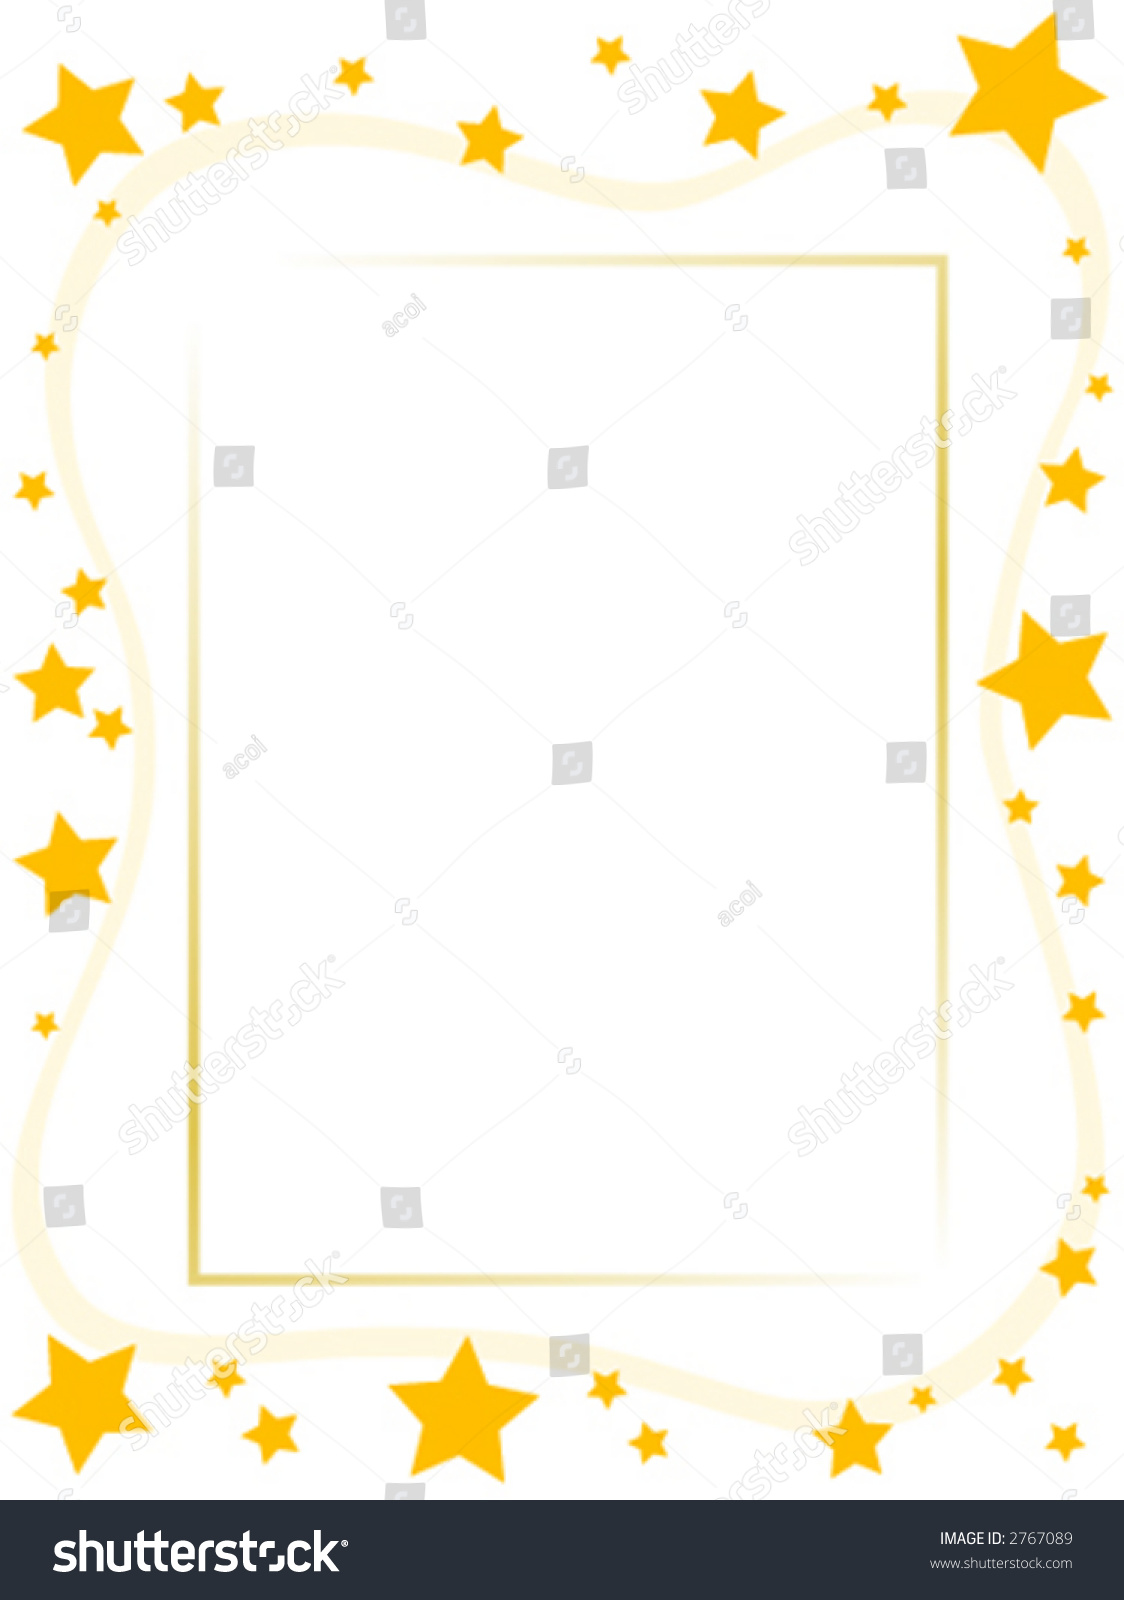 Yellow Star Frame Stock Vector 2767089 - Shutterstock